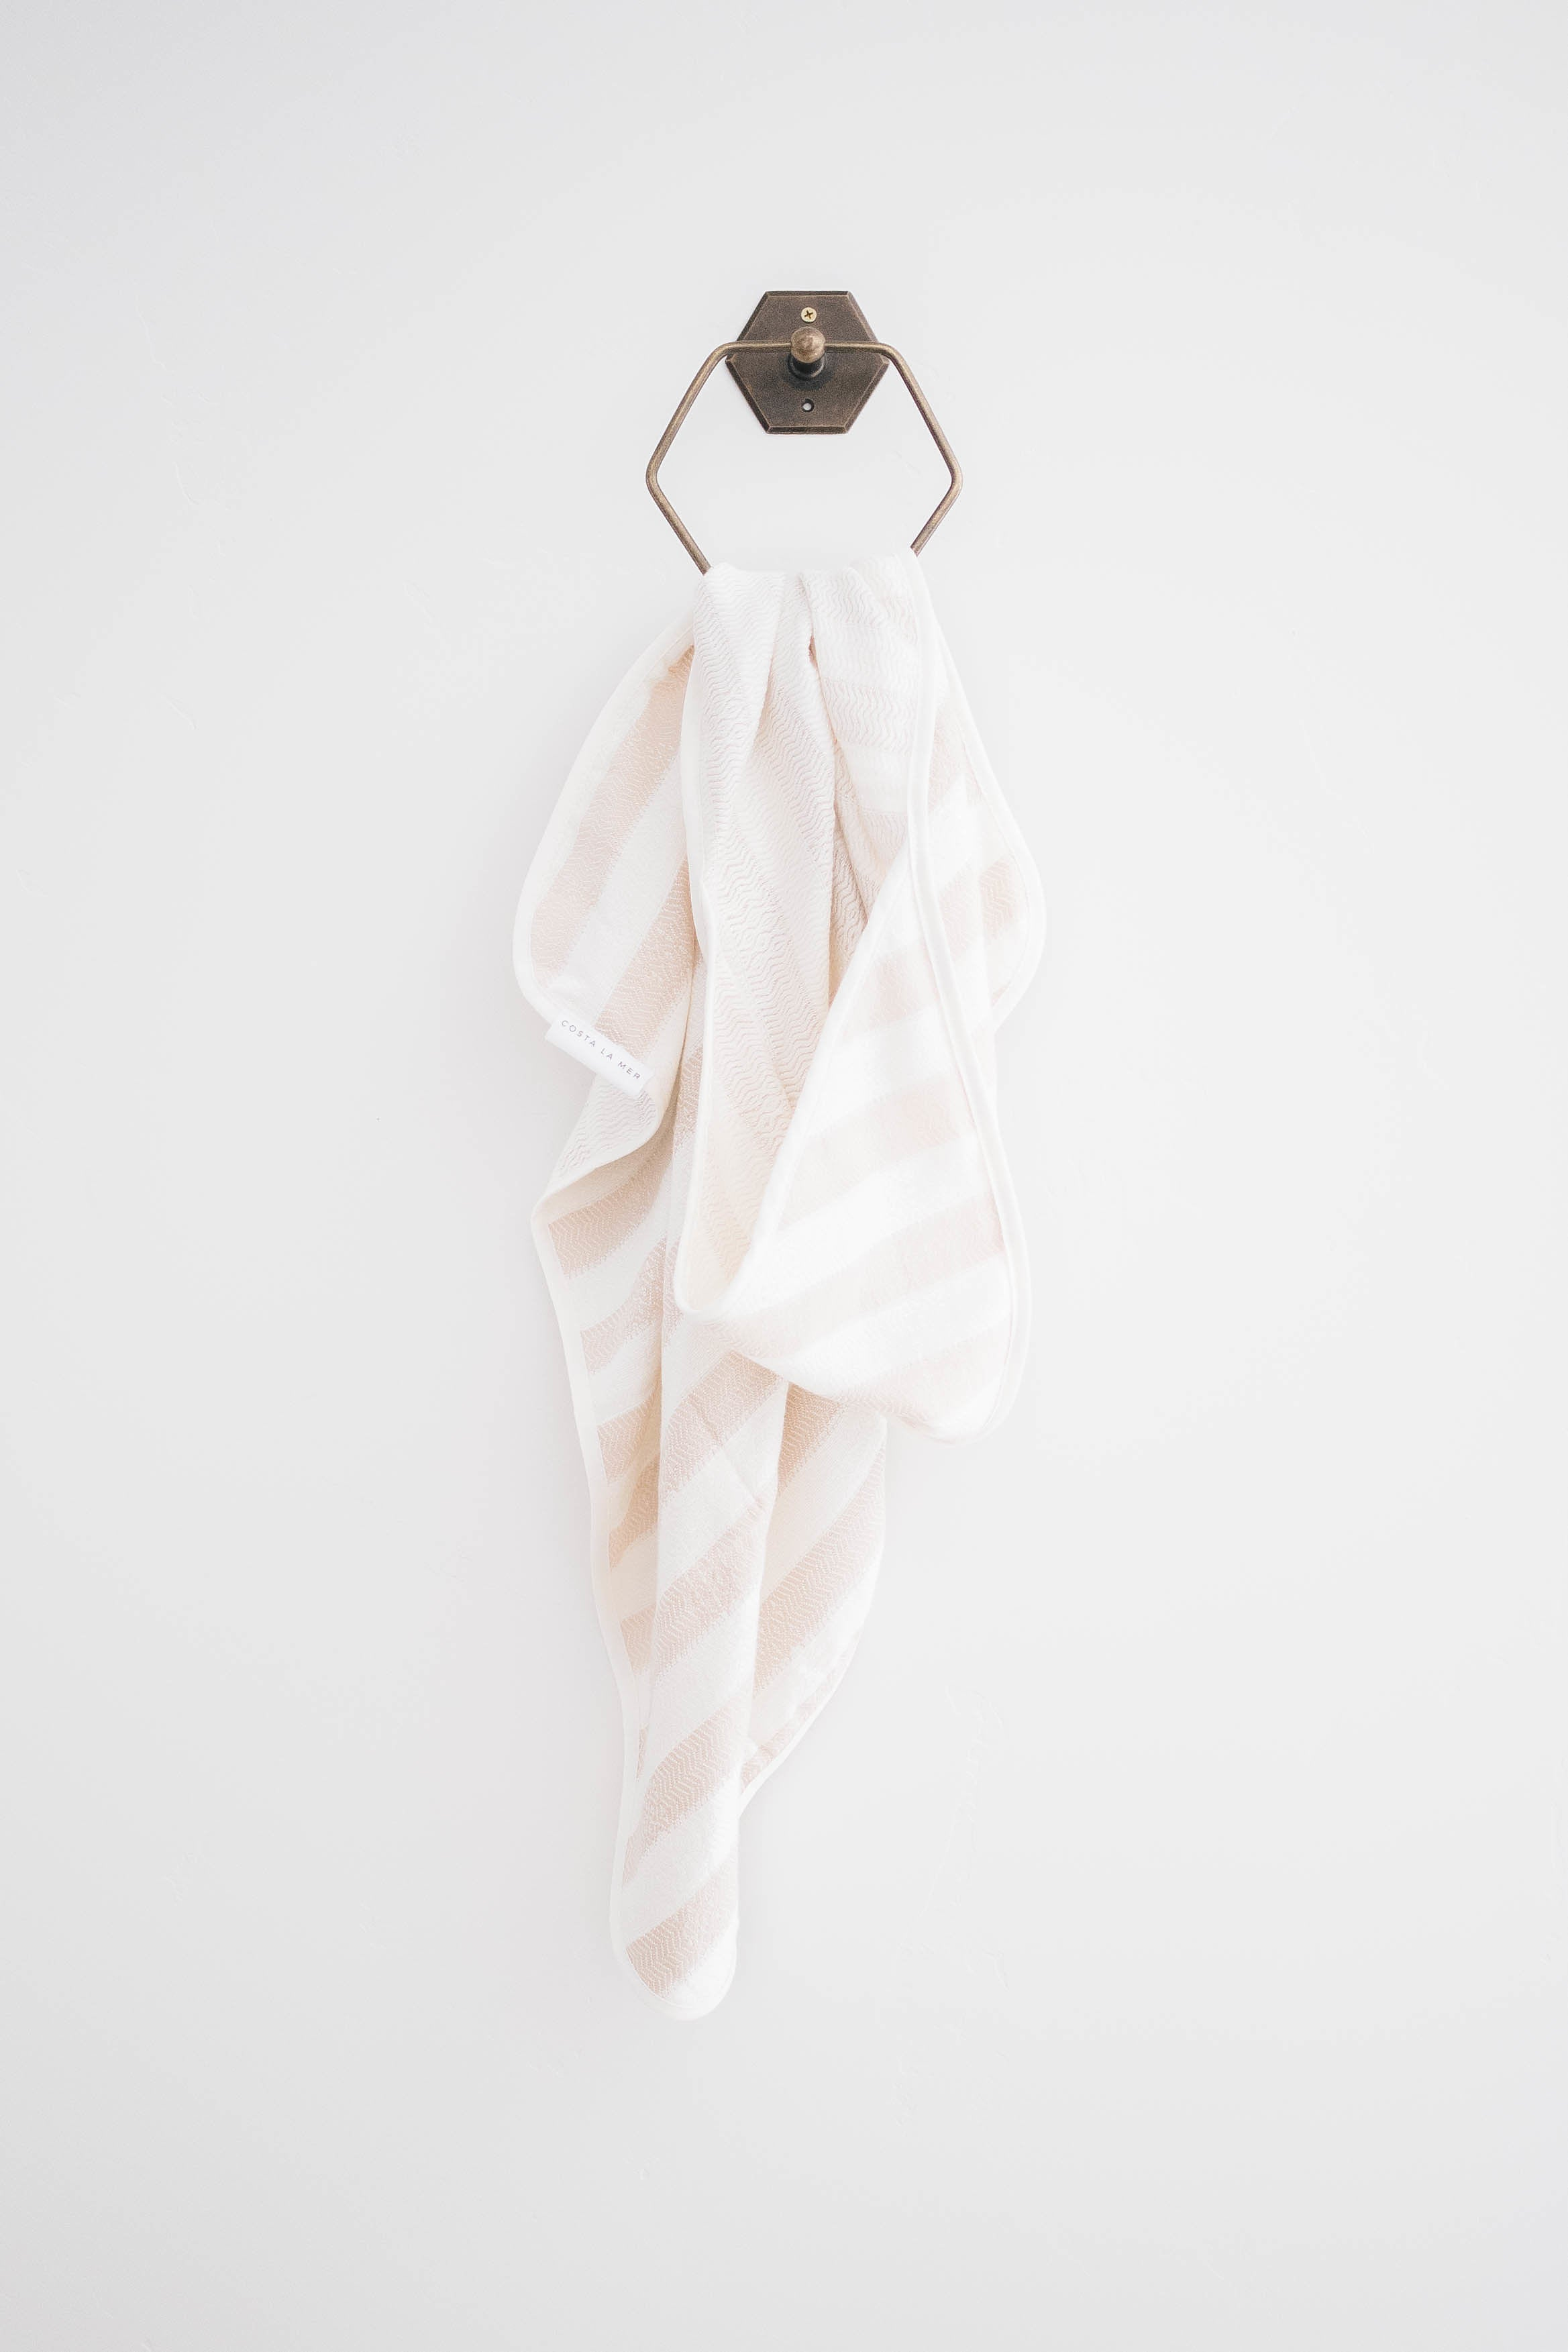 MALIBU HOODED TOWEL - TAN